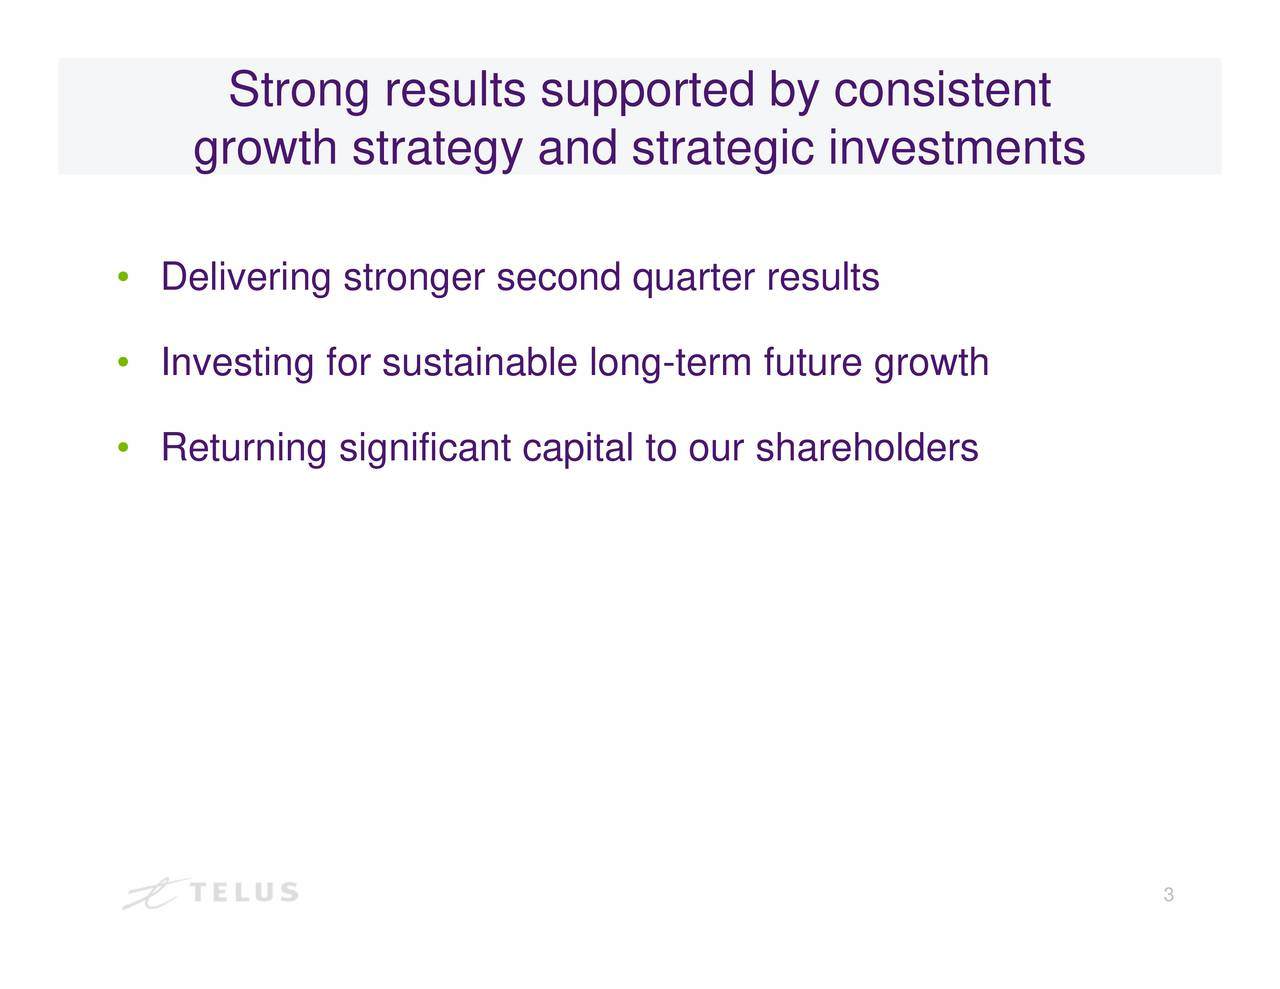 Strong results supported by consistent growth strategy and strategic investments Delivnriestetunnrngusiaiiabaluorap-reltotstrreh